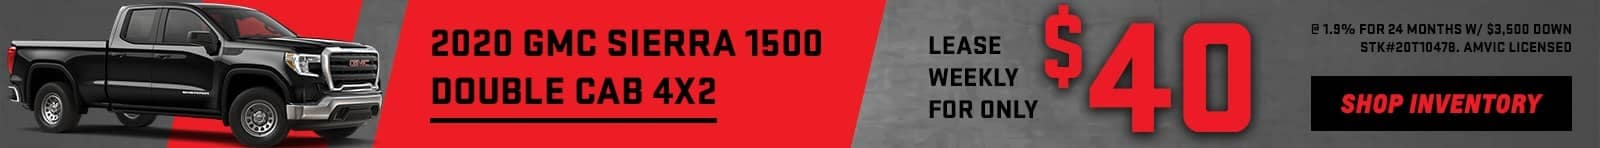 banner for 2020 GMC Sierra 1500